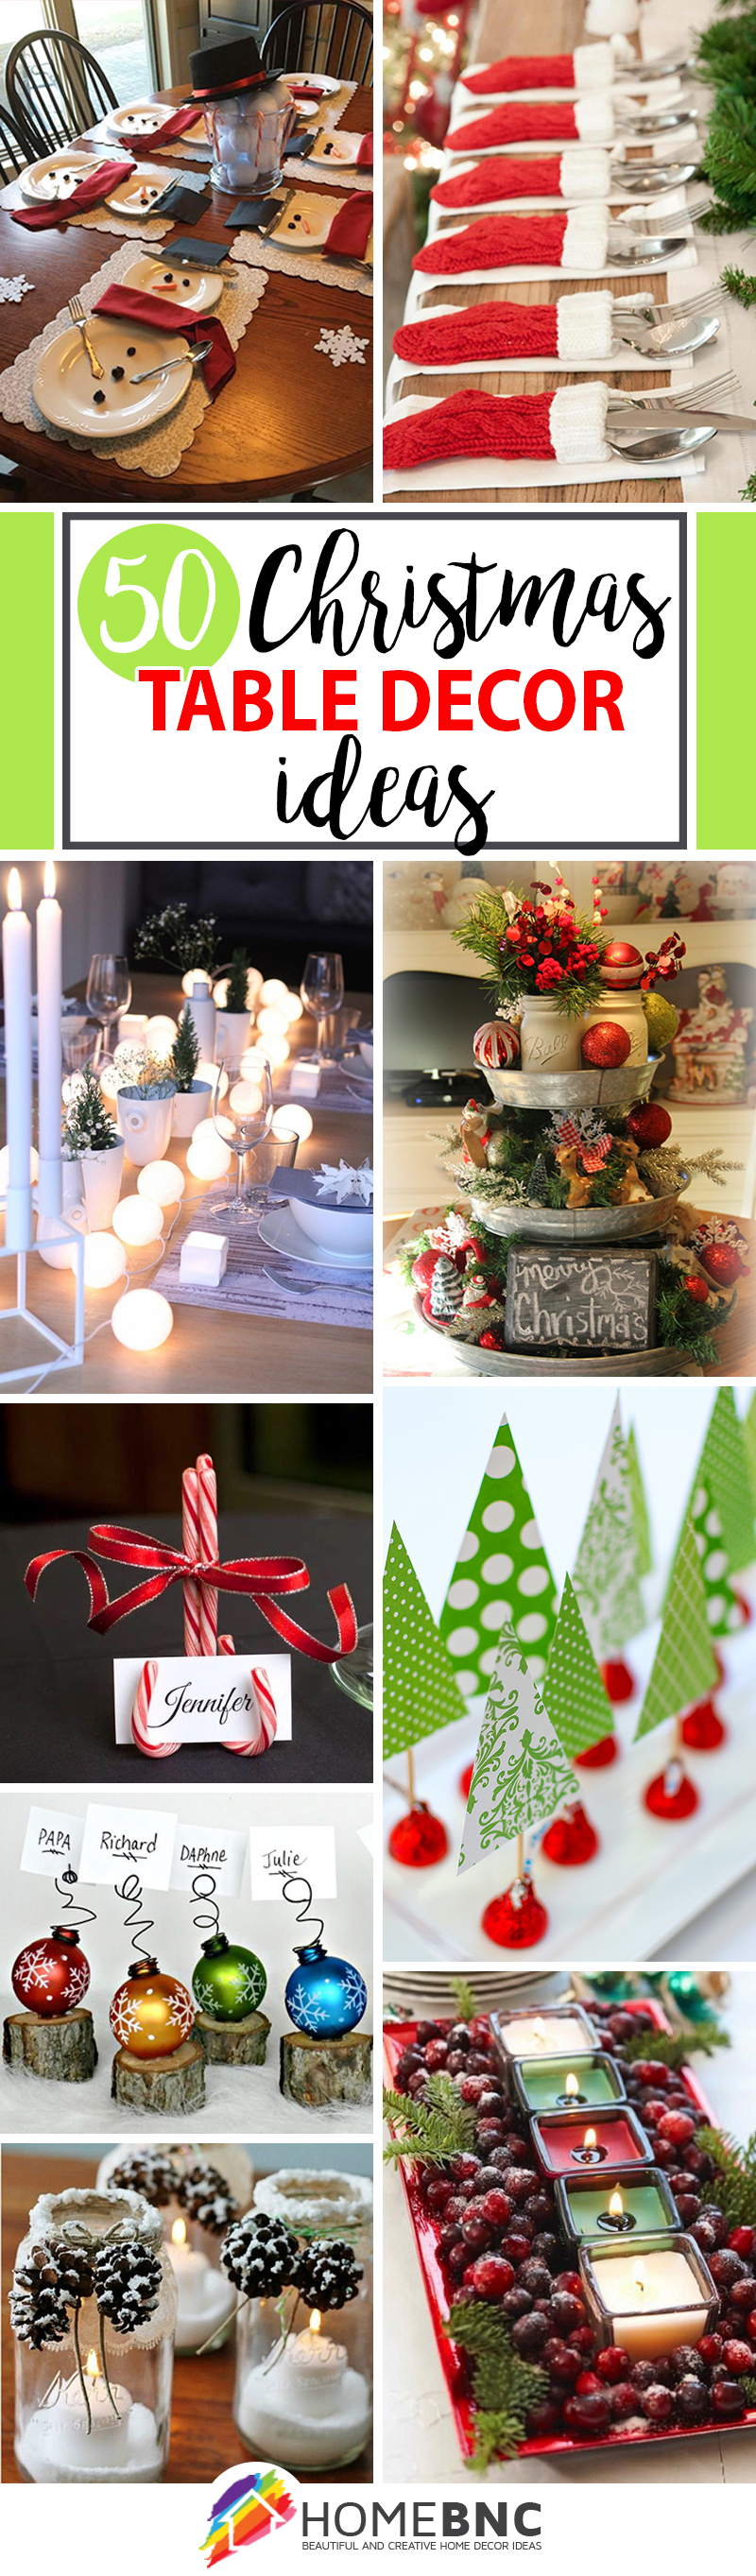 50 creative classy diy christmas table decoration ideas